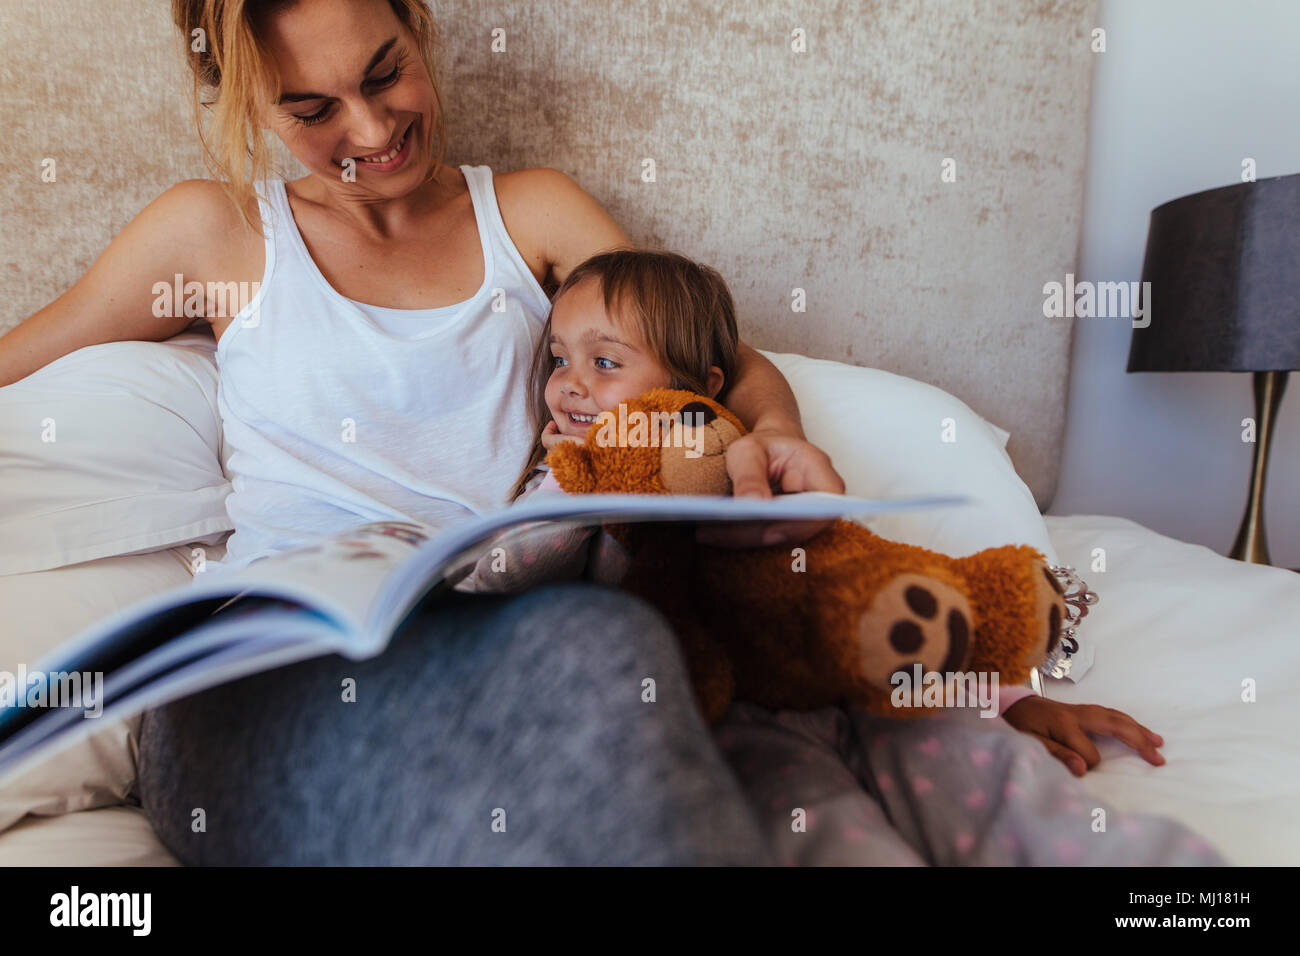 Bedtime story stock photos bedtime story stock images alamy happy family reading bedtime story in bed woman looking at her daughter and smiling while sciox Gallery